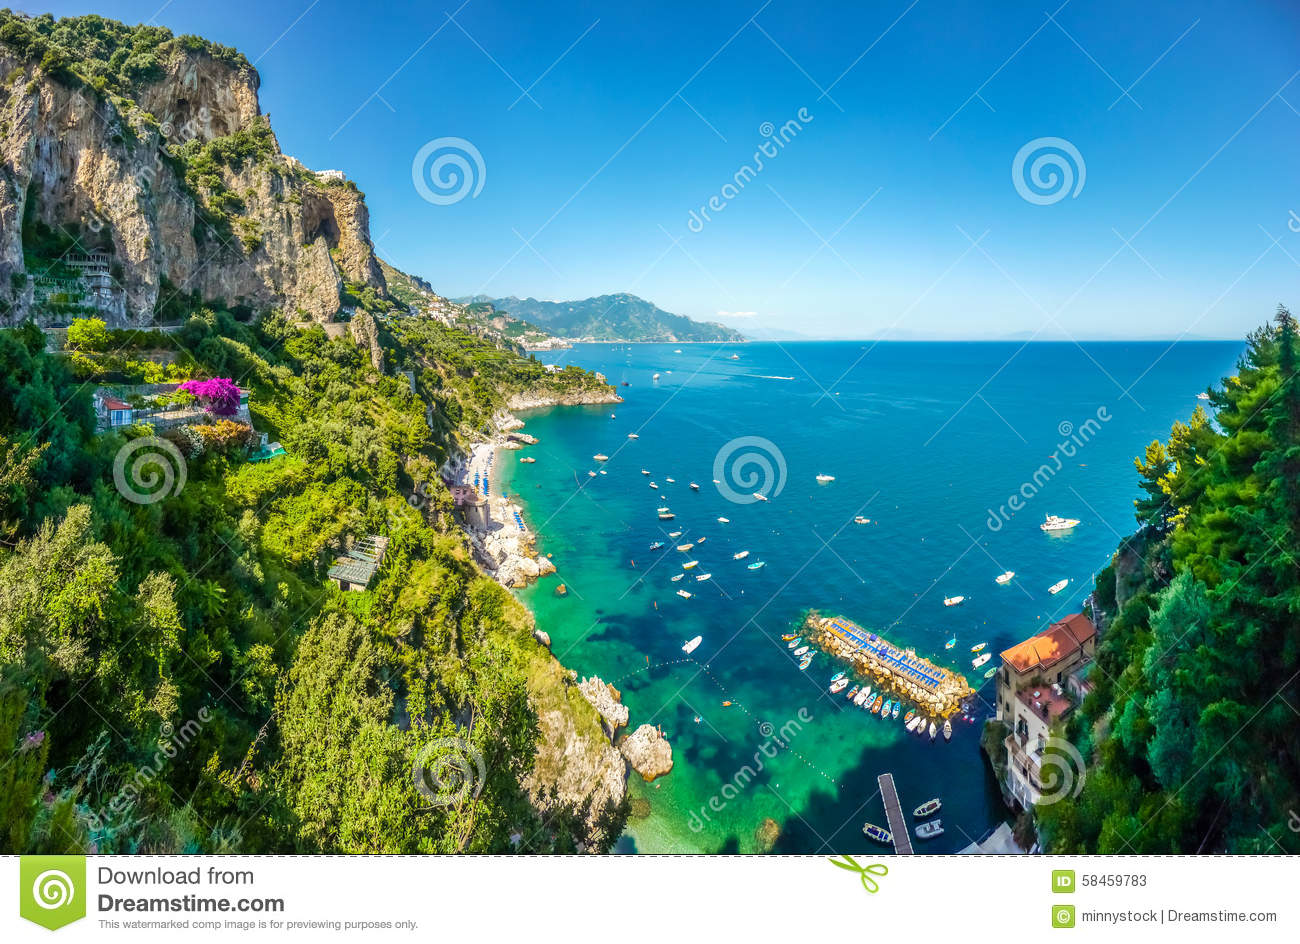 Scenic view of Amalfi Coast, Campania, Italy